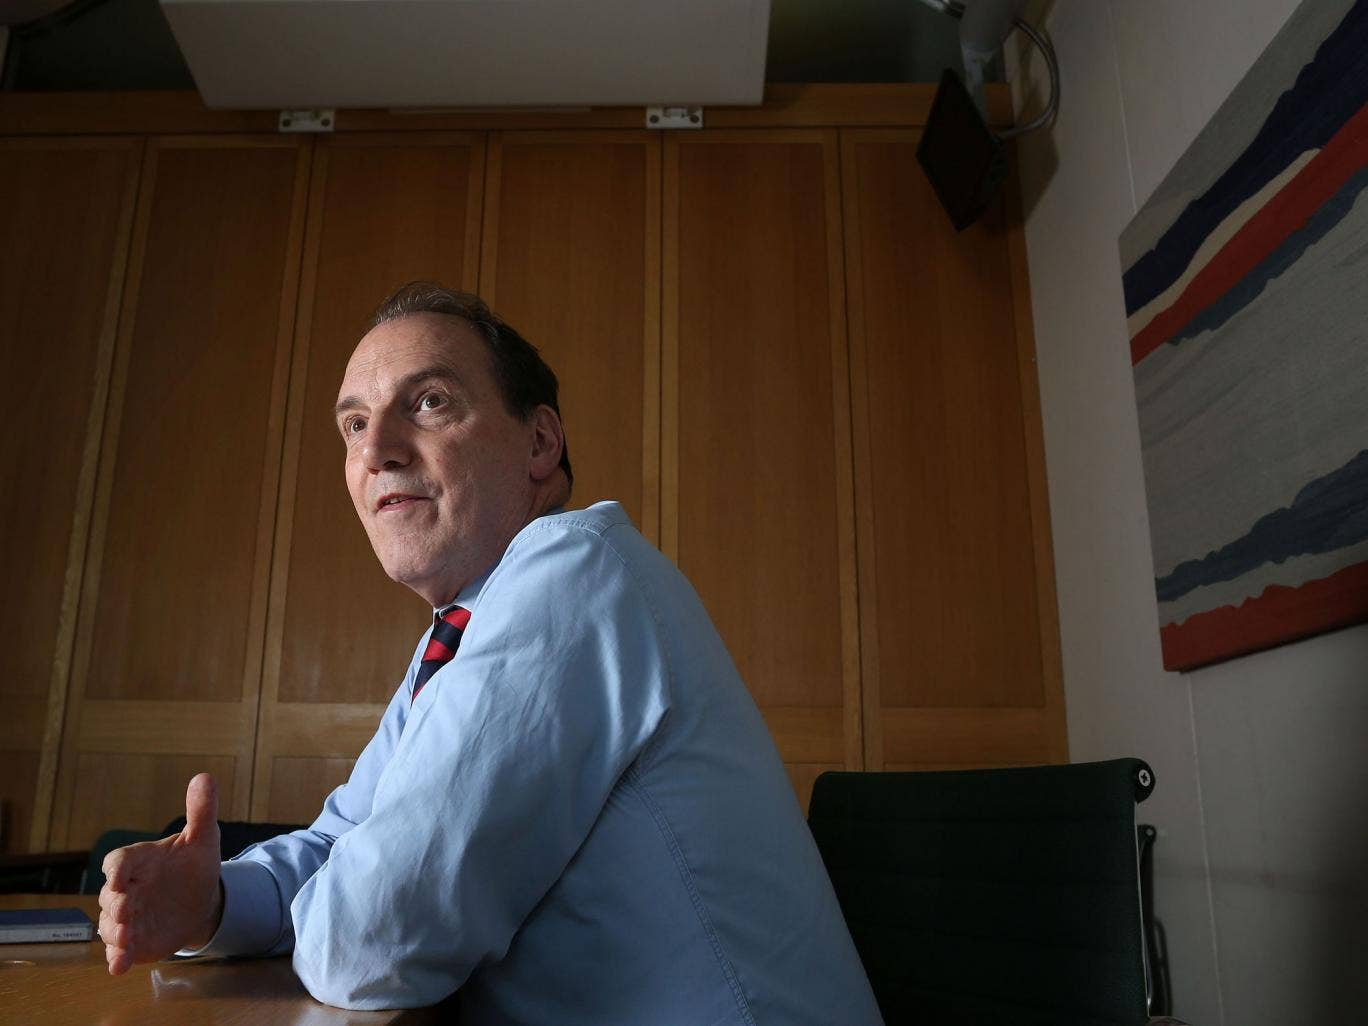 Simon Hughes has taken a ministerial role after 30 years at Westminster